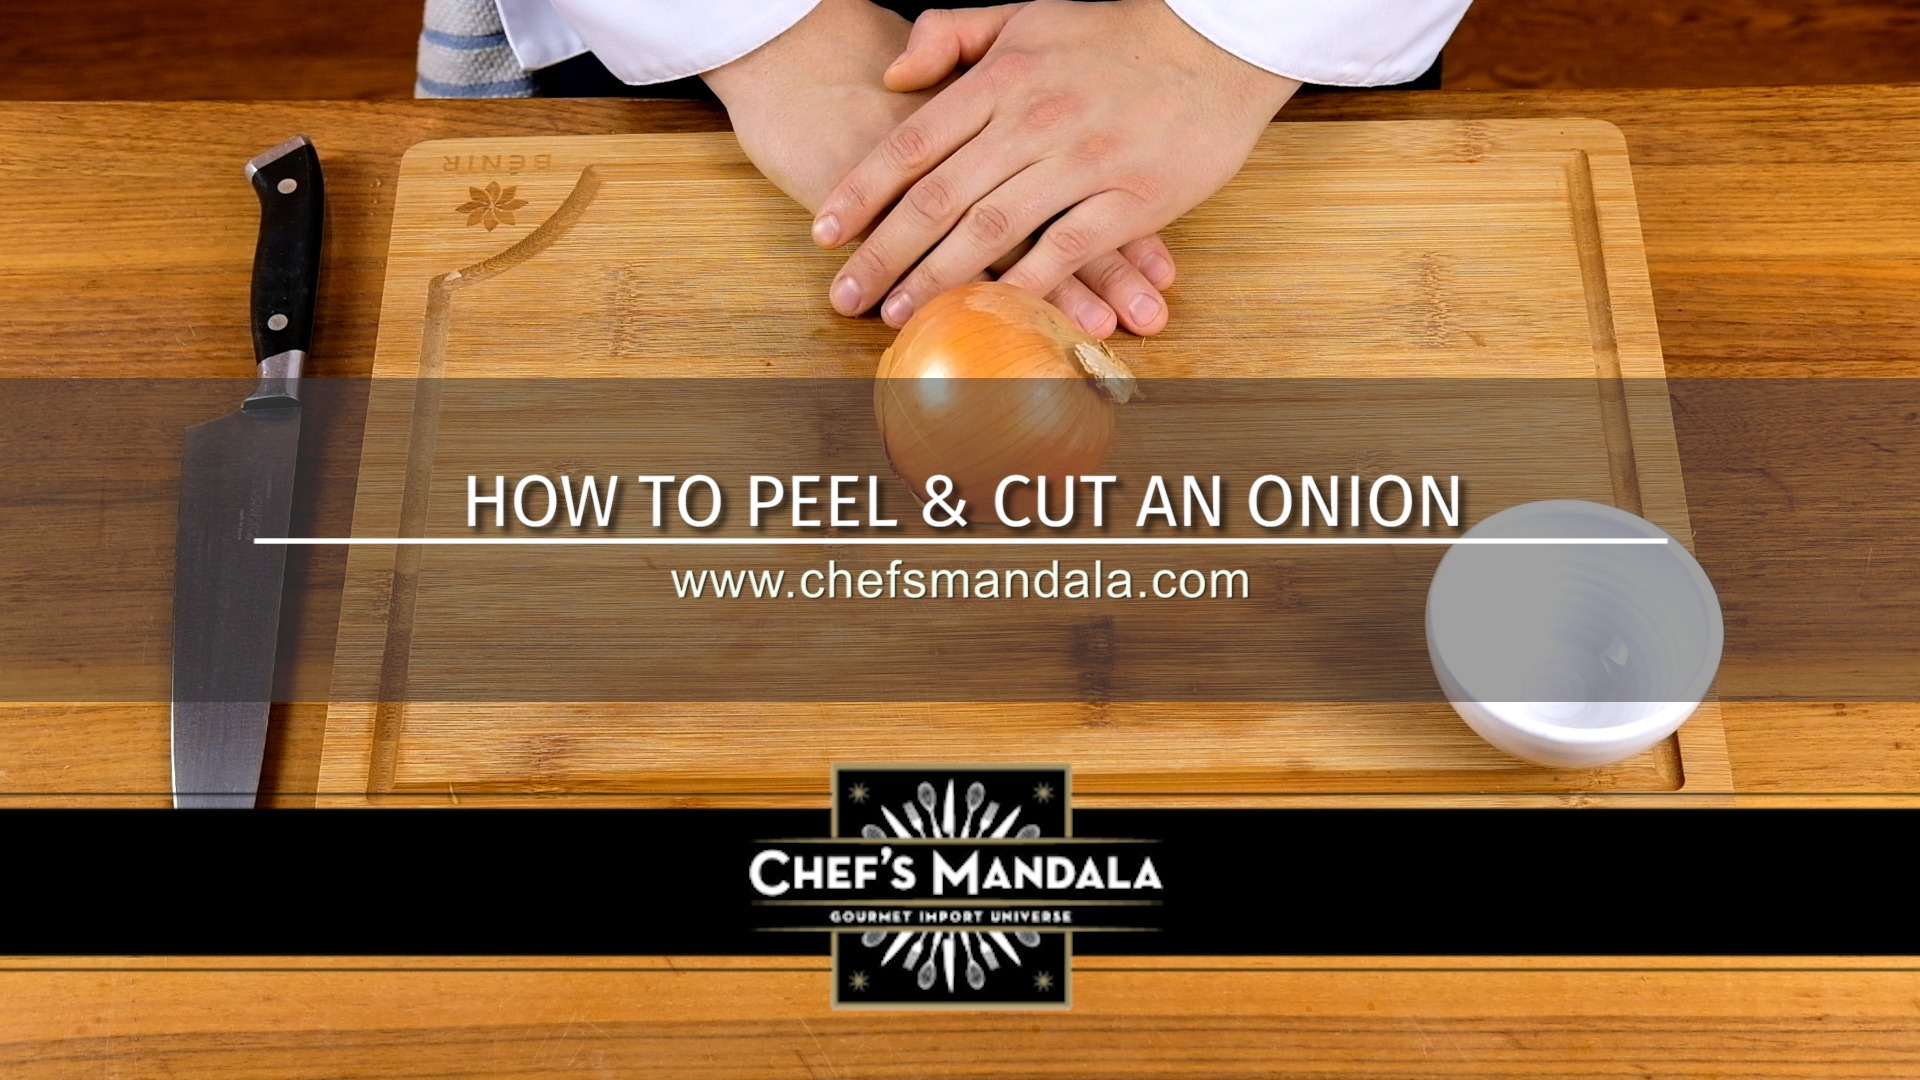 HOW TO CUT PEEL & CUT AN ONION